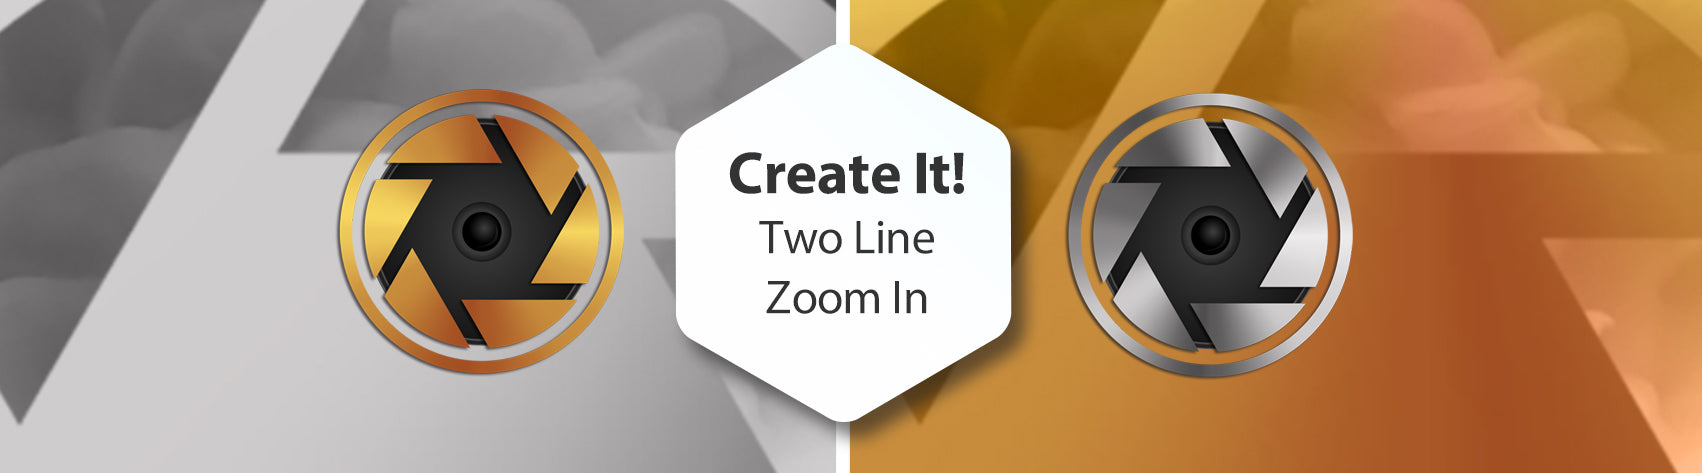 Create It! Two Line Zoom In